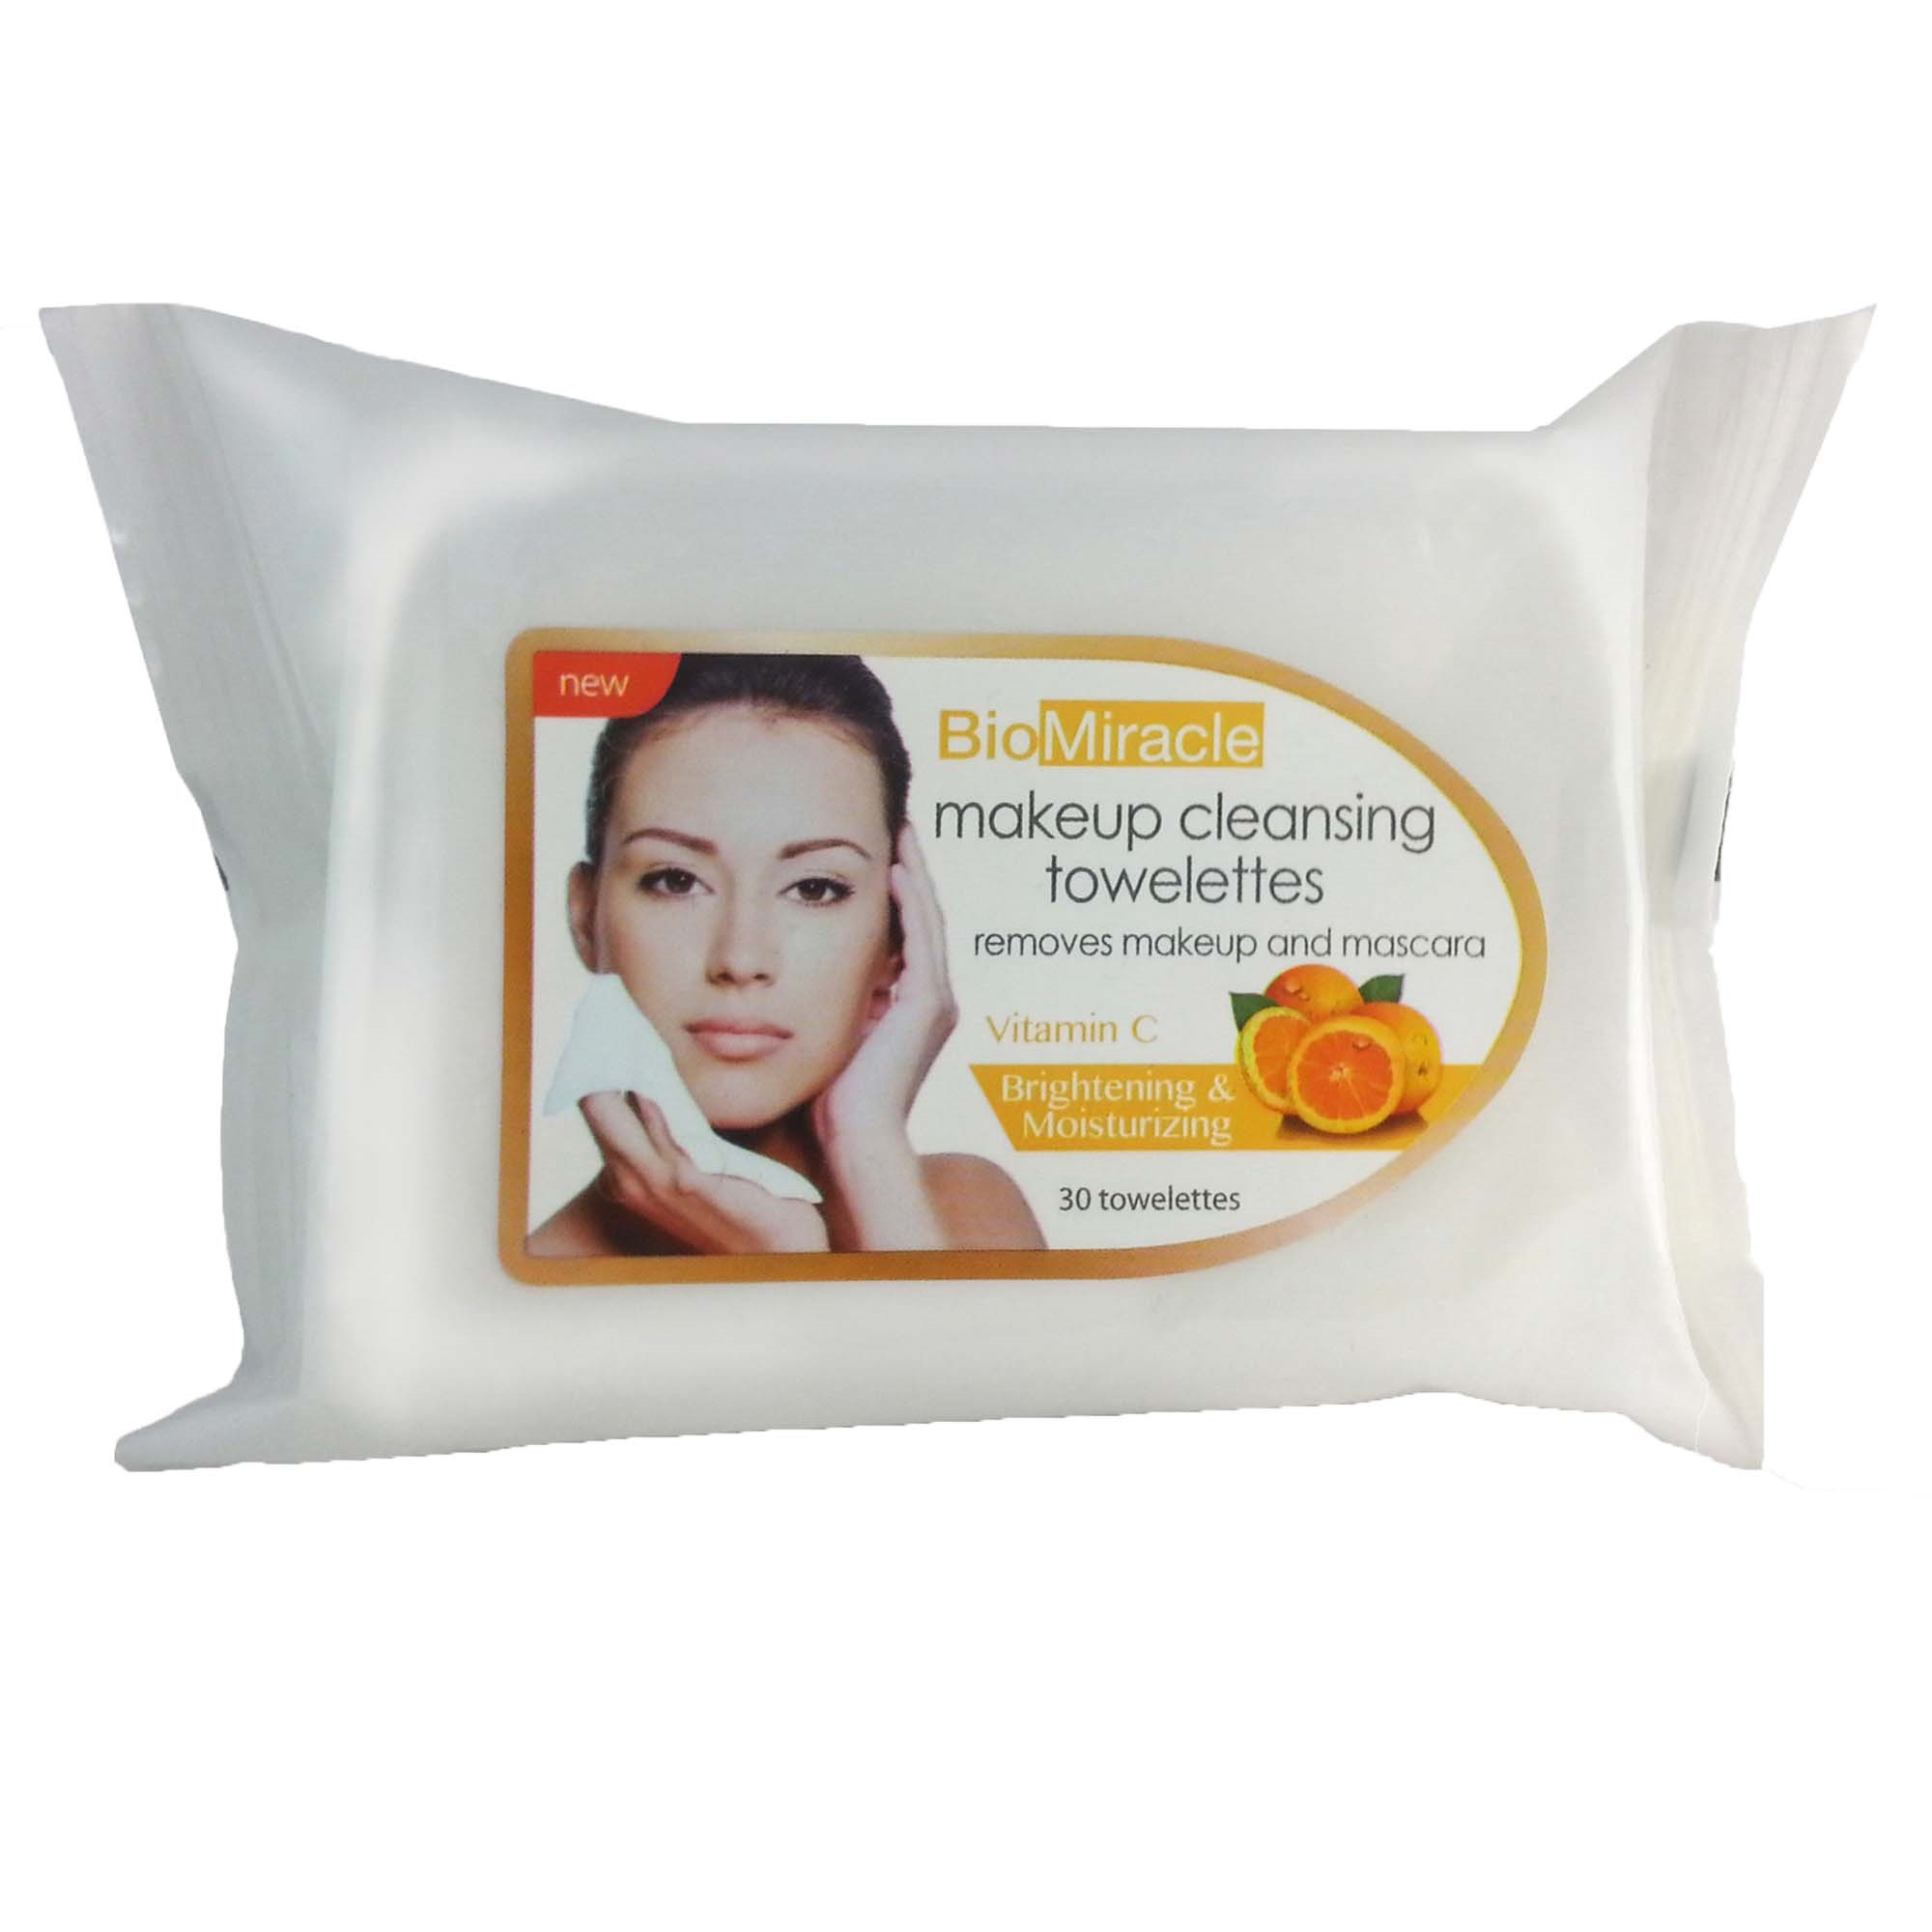 BioMiracl Towelettes, Vitamin C, 30 Ct Palmers Cocoa Butter Formula Gentle Facial Cleansing Wipes (Pack of 3/ 25wipes Each), Dual texture, Moisturizing! By Palmers